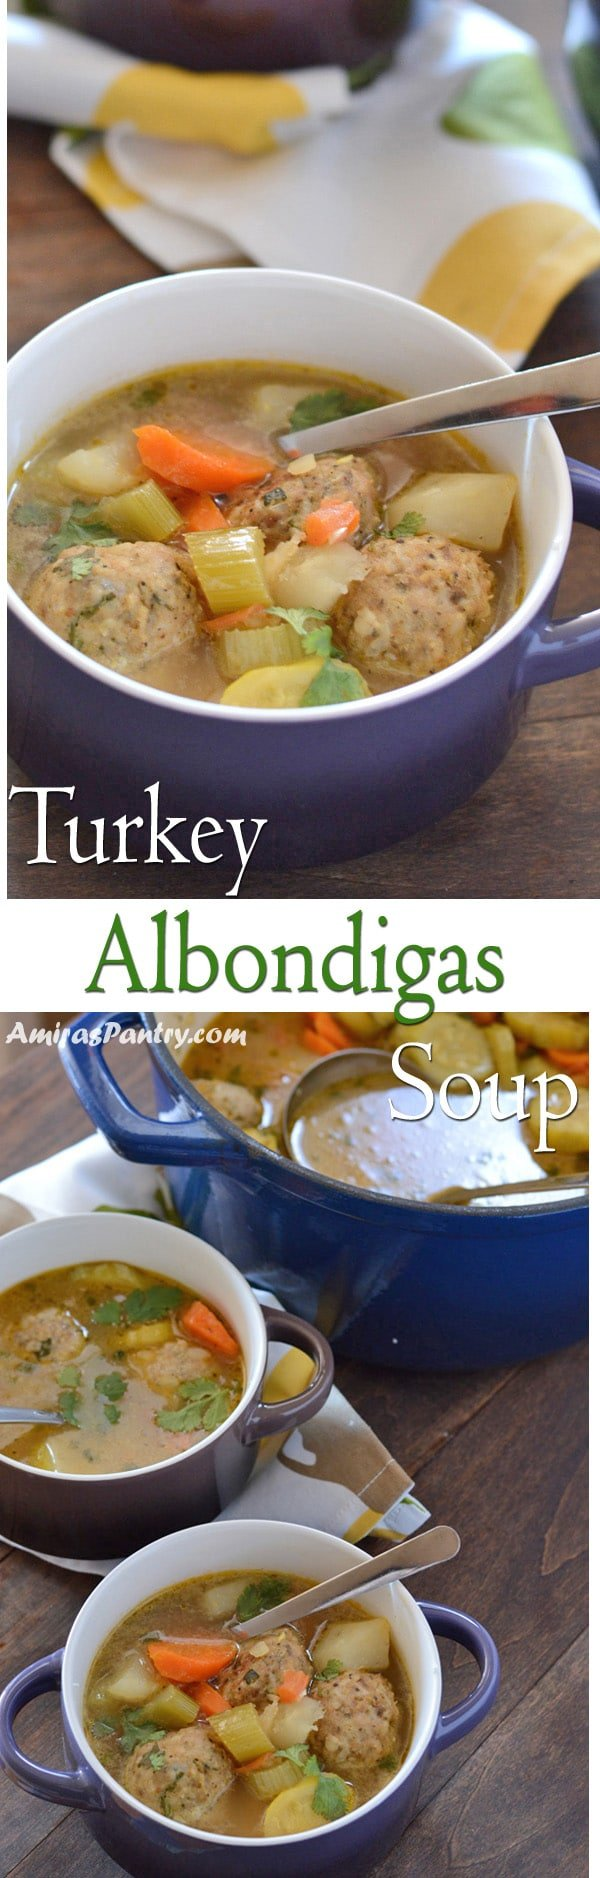 Albondigas Mexican soup is a meatball soup that in incredibly tasty, full of flavors and loaded with vegetables.